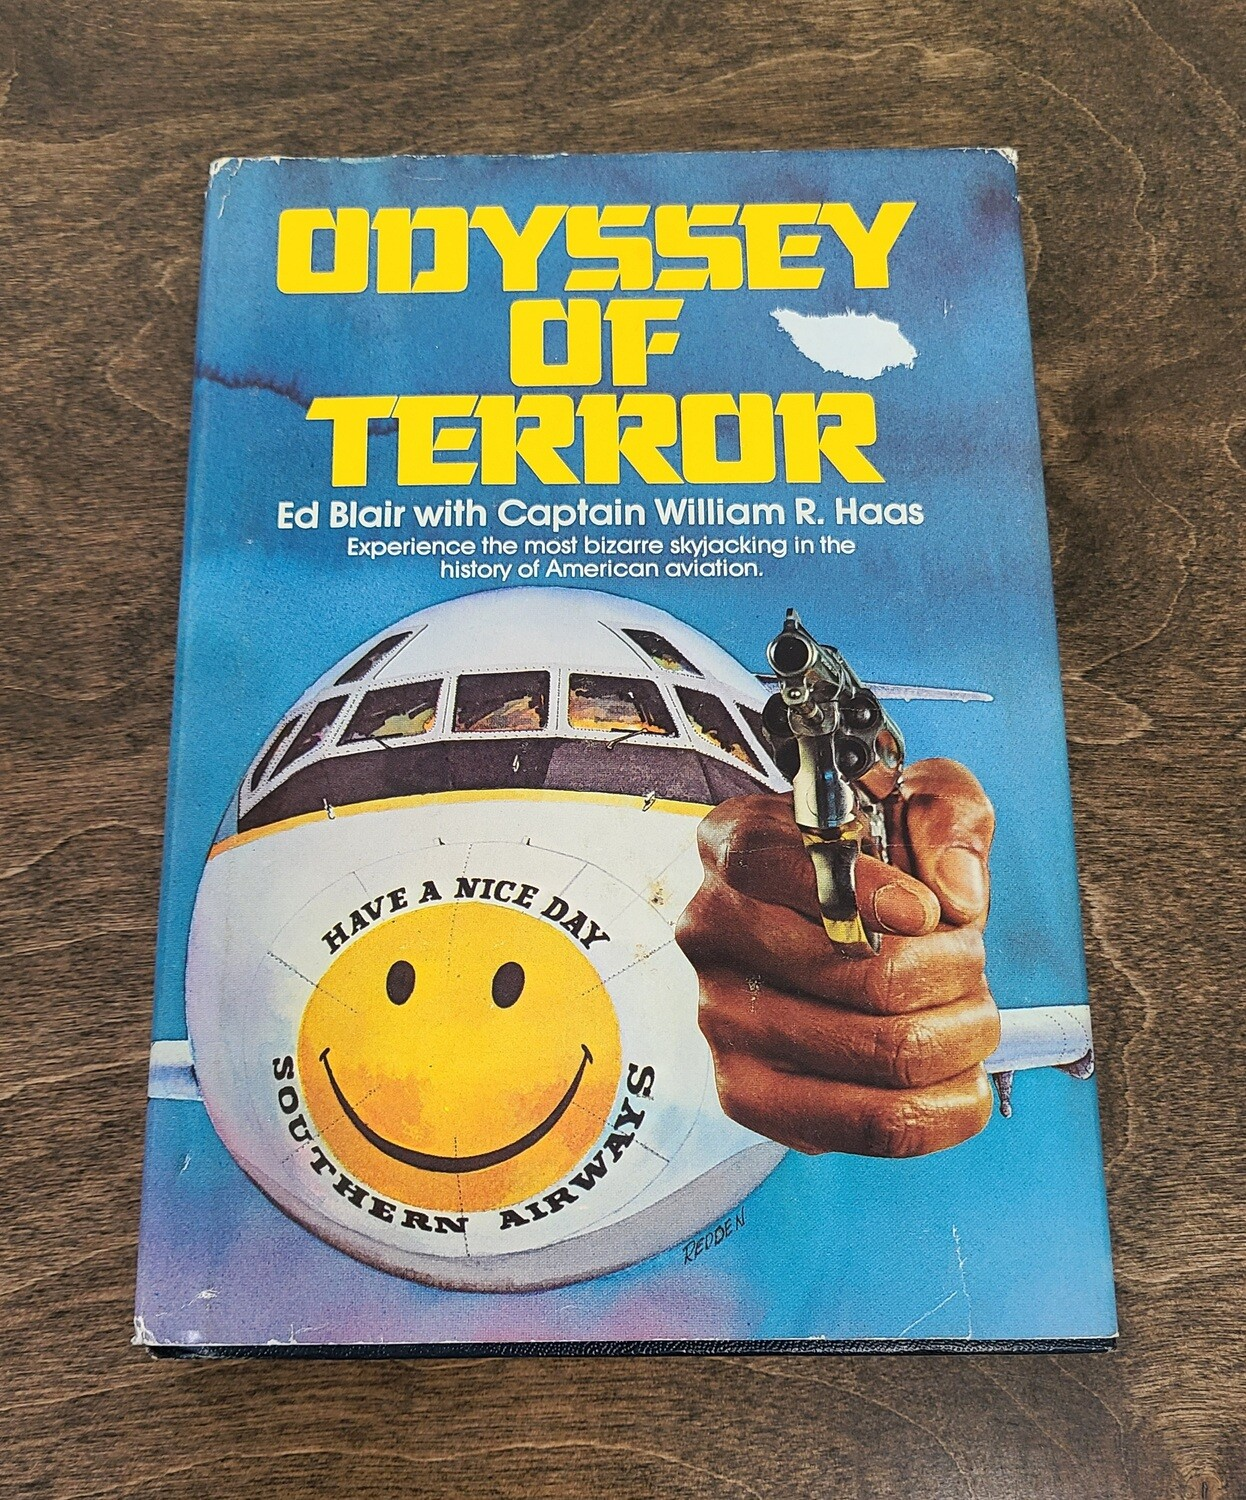 Odyssey of Terror by Ed Blair with Captain William R. Haas